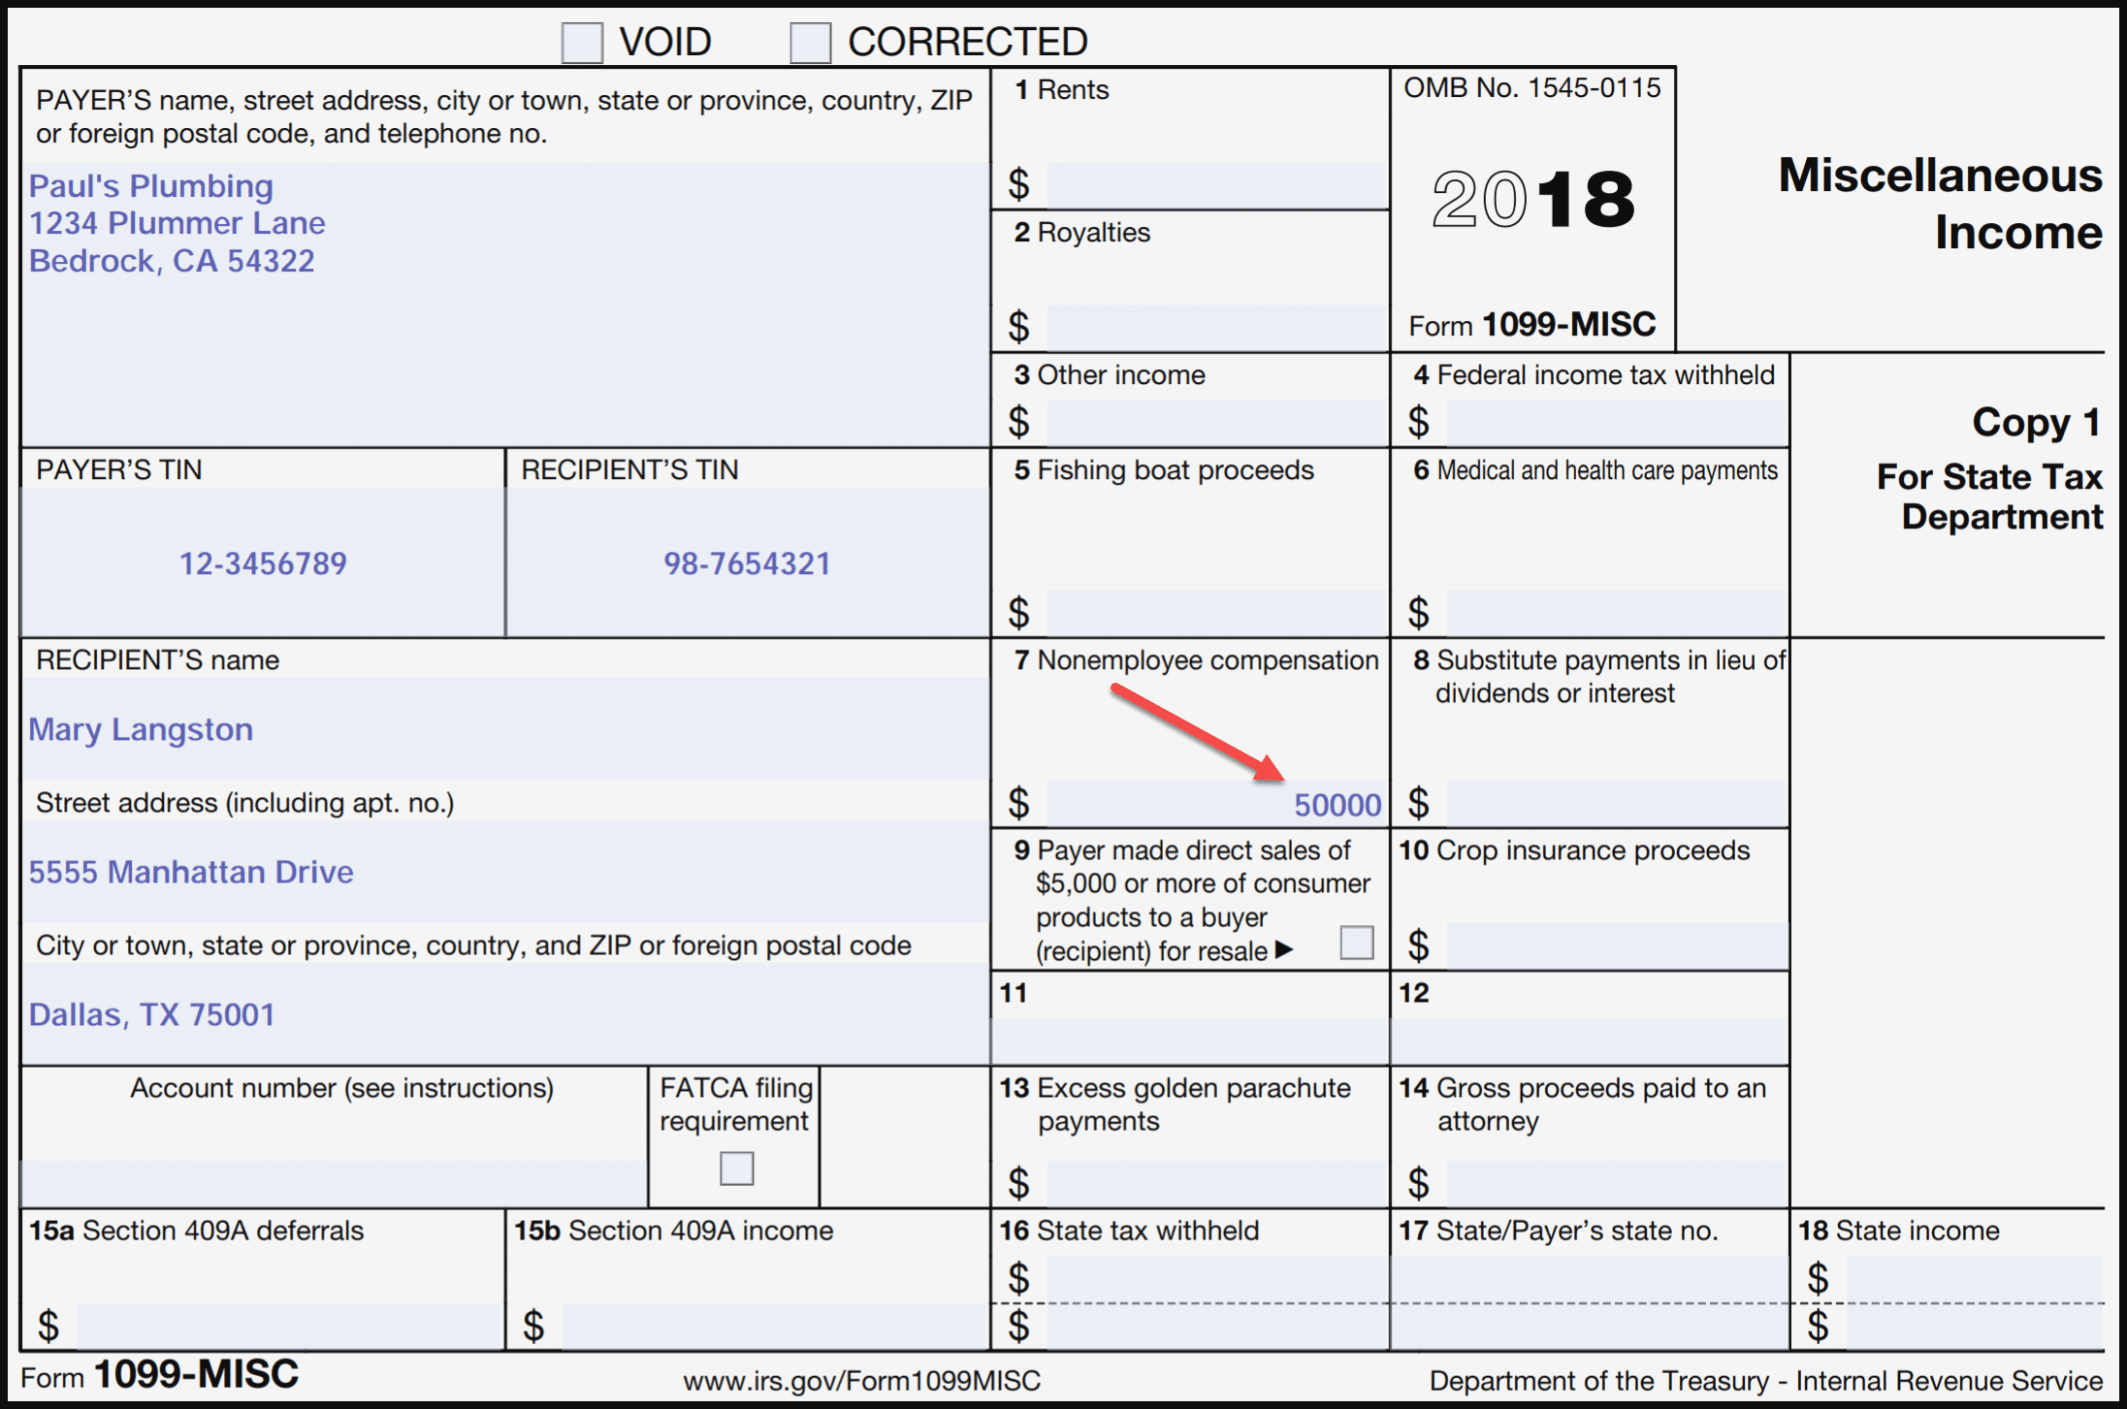 Form 1099 Tax Reporting